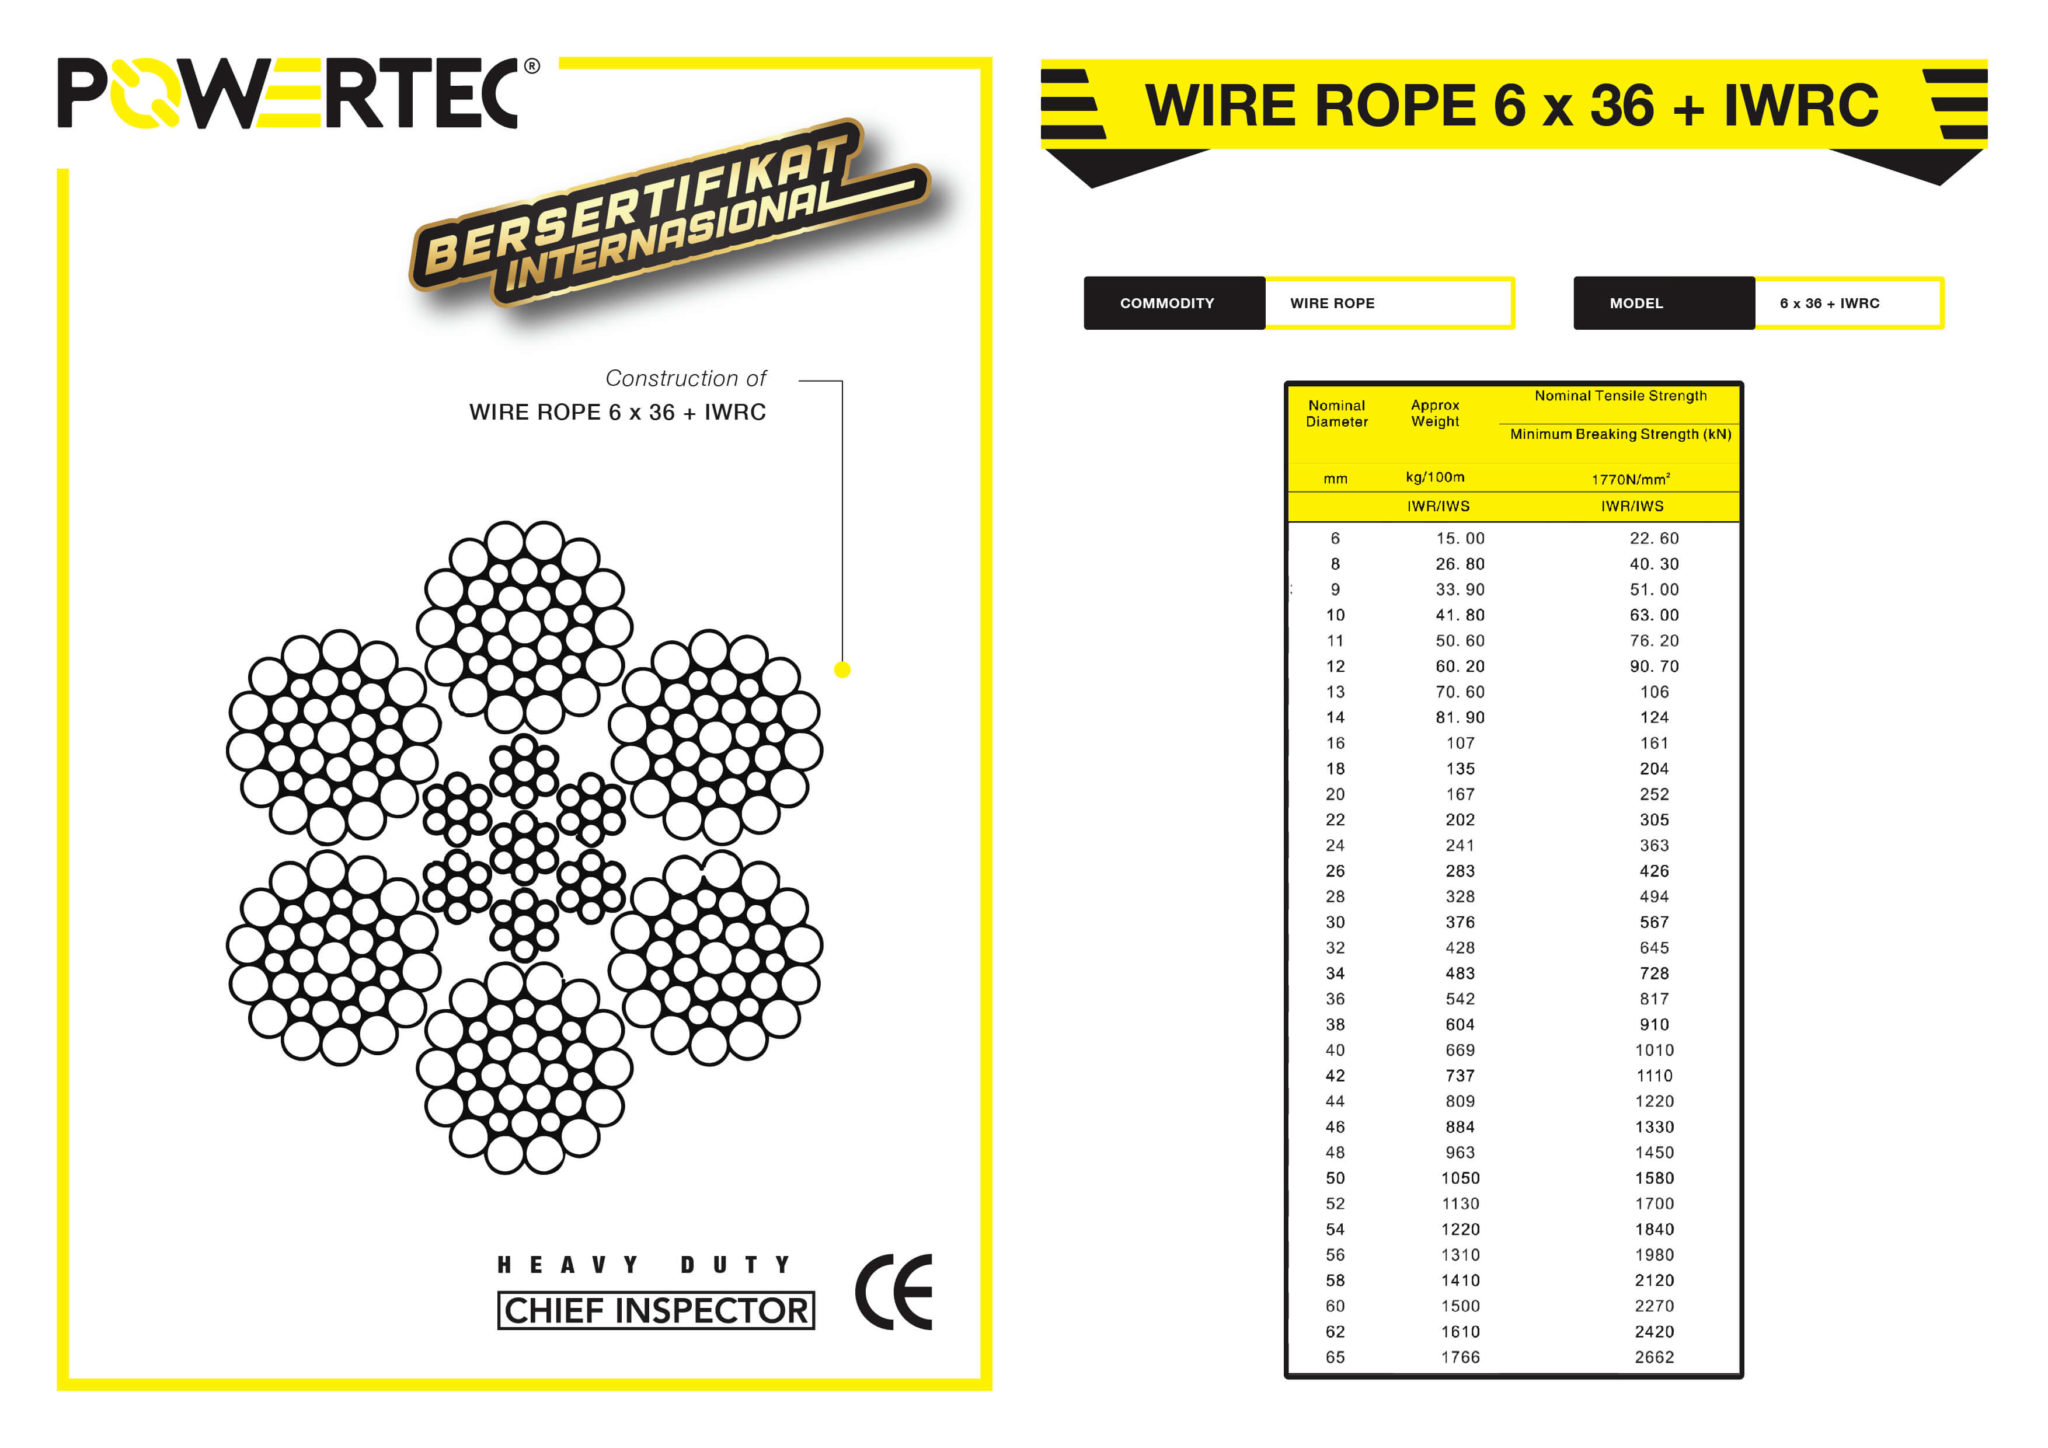 POWERTEC WIRE ROPE 6 x 36 + IWRC BROCHURE